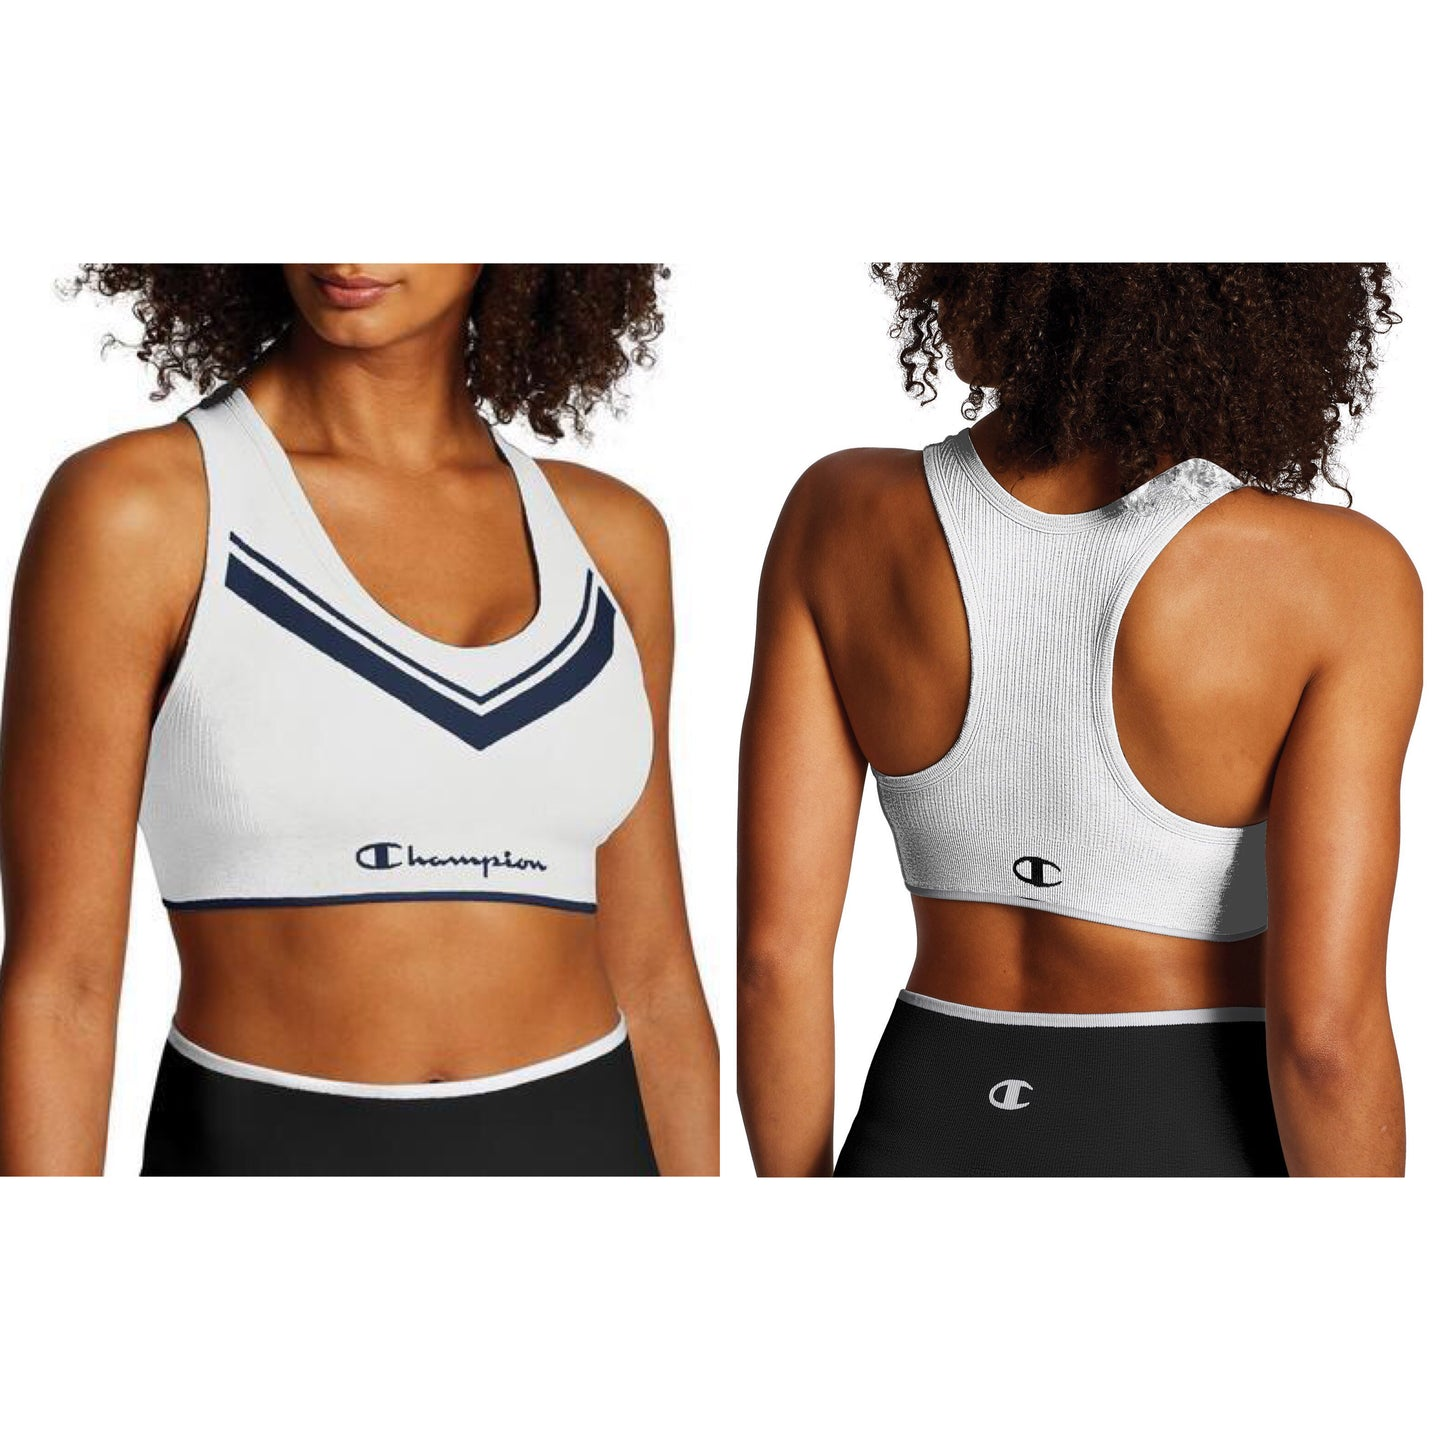 Champion The Sweatshirt Chevron Racerback Sports Bra Size S (NWT)